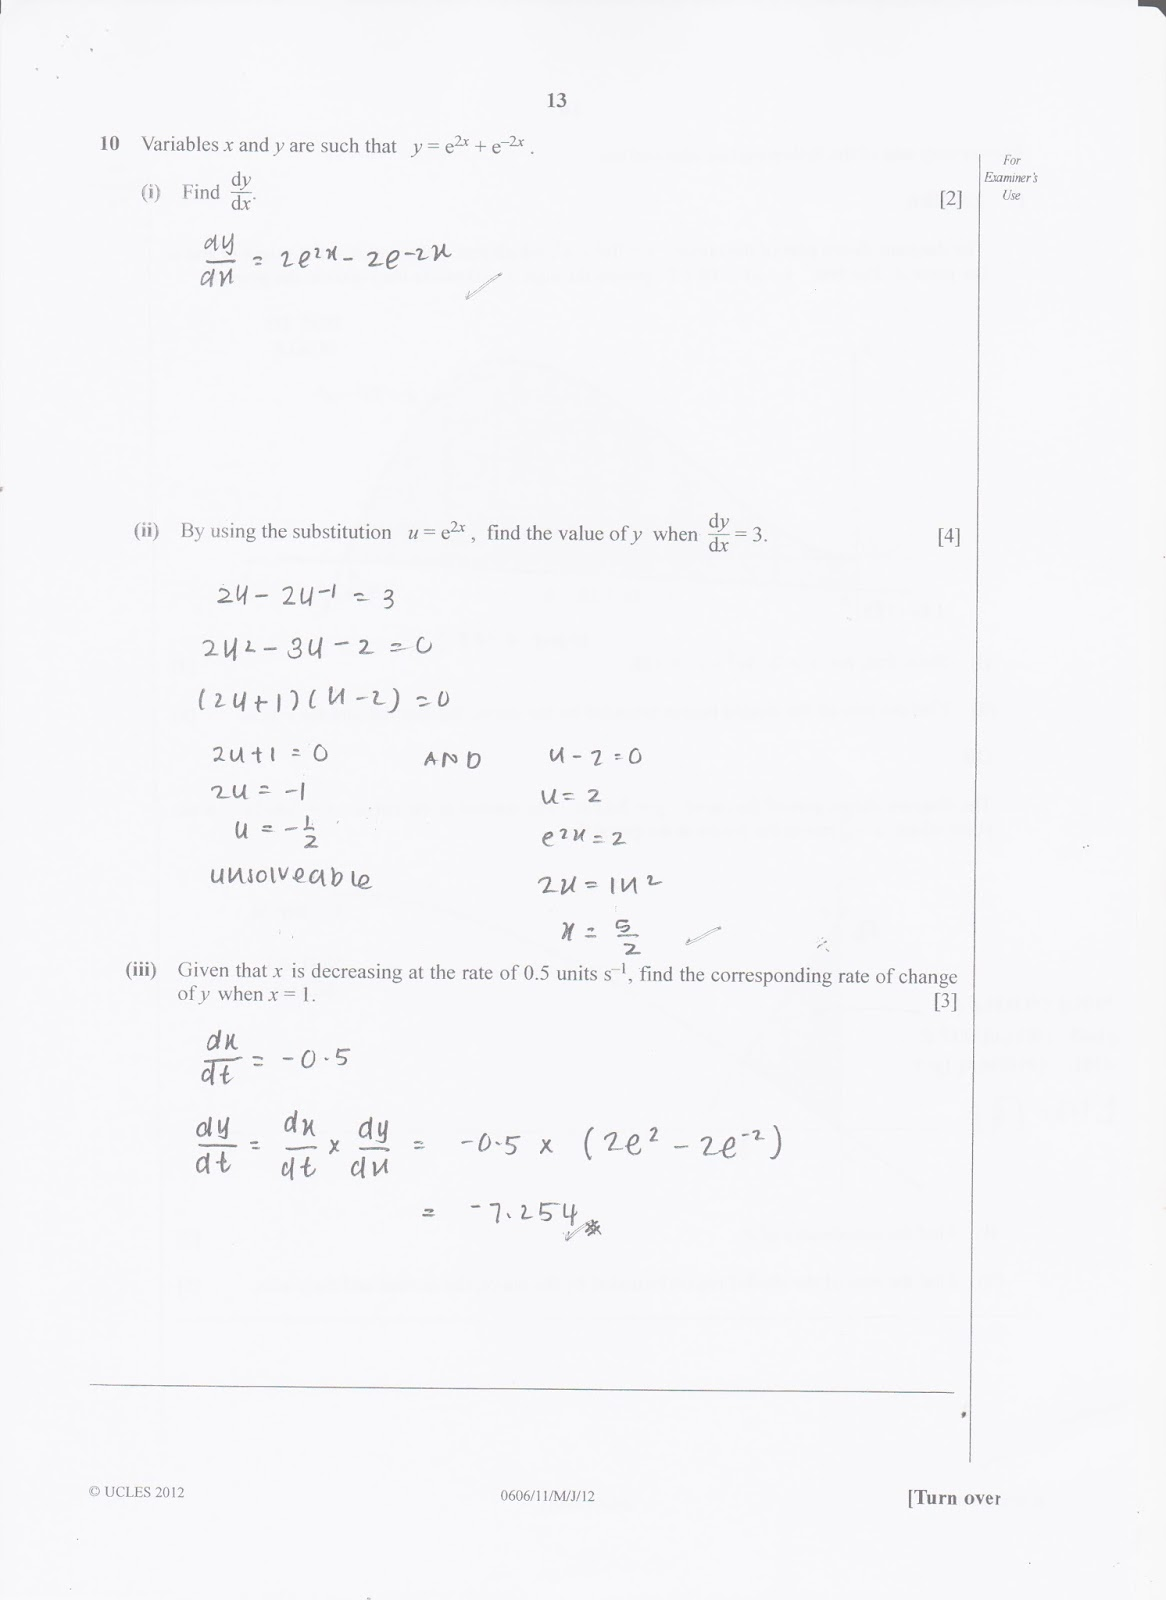 IGCSE Add Math Working Answer [0606/11] Paper 1 2012 (May